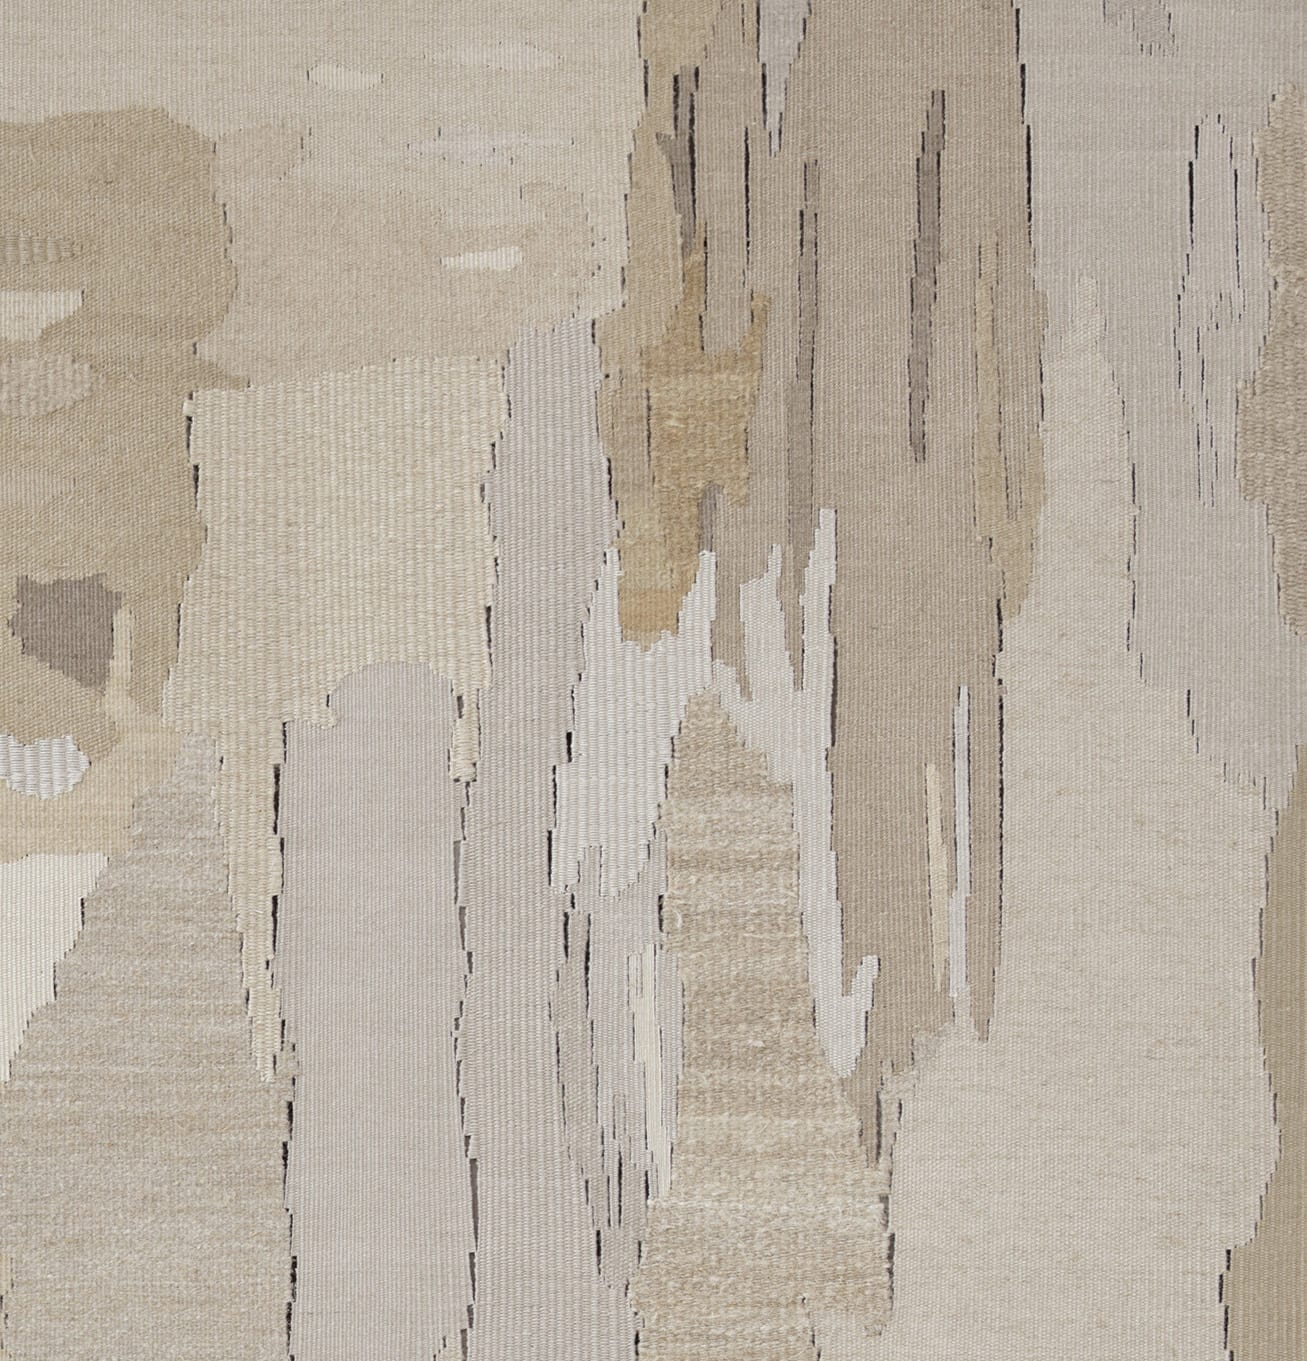 "<p>Andreas Eriksson, <em>Weissensee No. 18</em>, 2019. Detail.</p><h3>""Territories of the finished tapestries might be distinguished by a particular knotted texture or the stands of long fibre sprouting from the surface. Andreas has described the tapestries as 'existential landscapes'. We might also see them as a conceptual extension of painting in which the picture migrates to the canvas itself."" </h3><p><strong>- Hettie Judah on Andreas Eriksson, 2020</strong></p>"